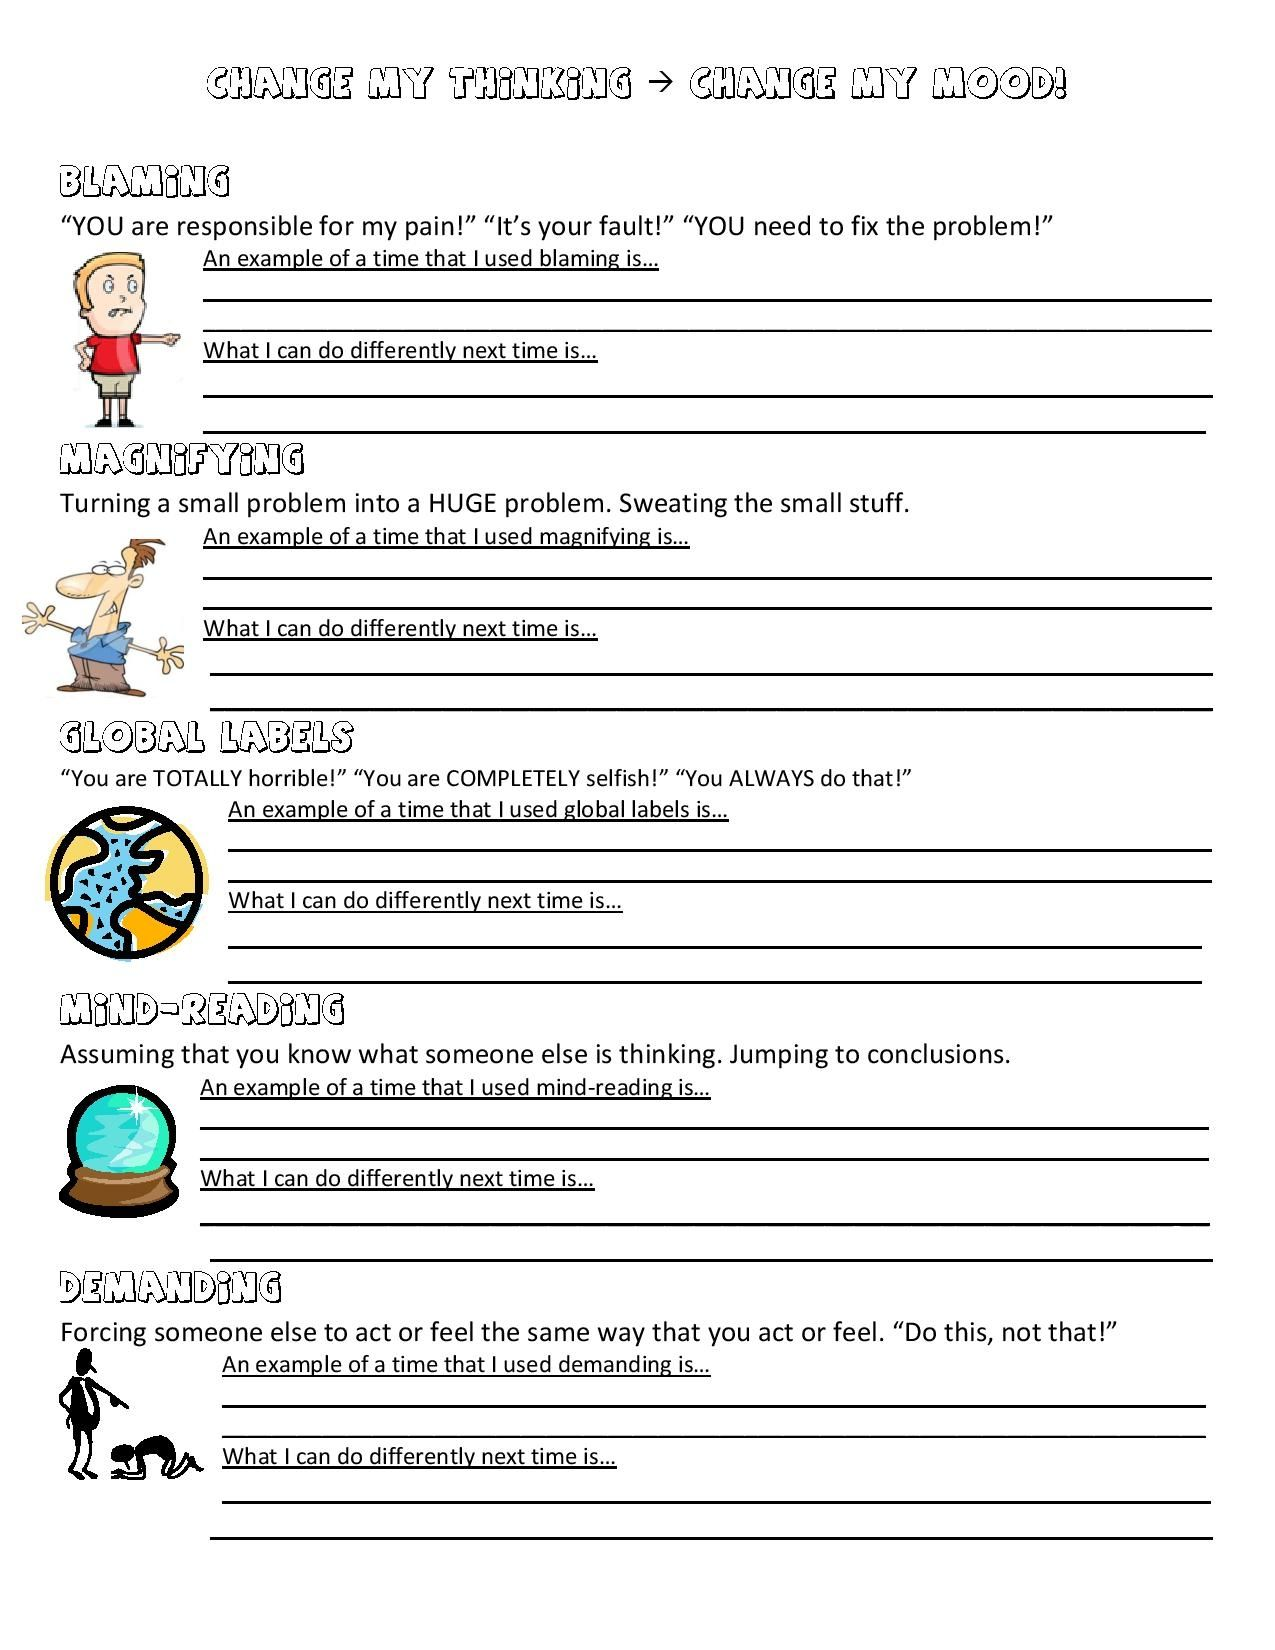 Printables Anger Management Therapy Worksheets 1000 images about helpful worksheets on pinterest heather orourke